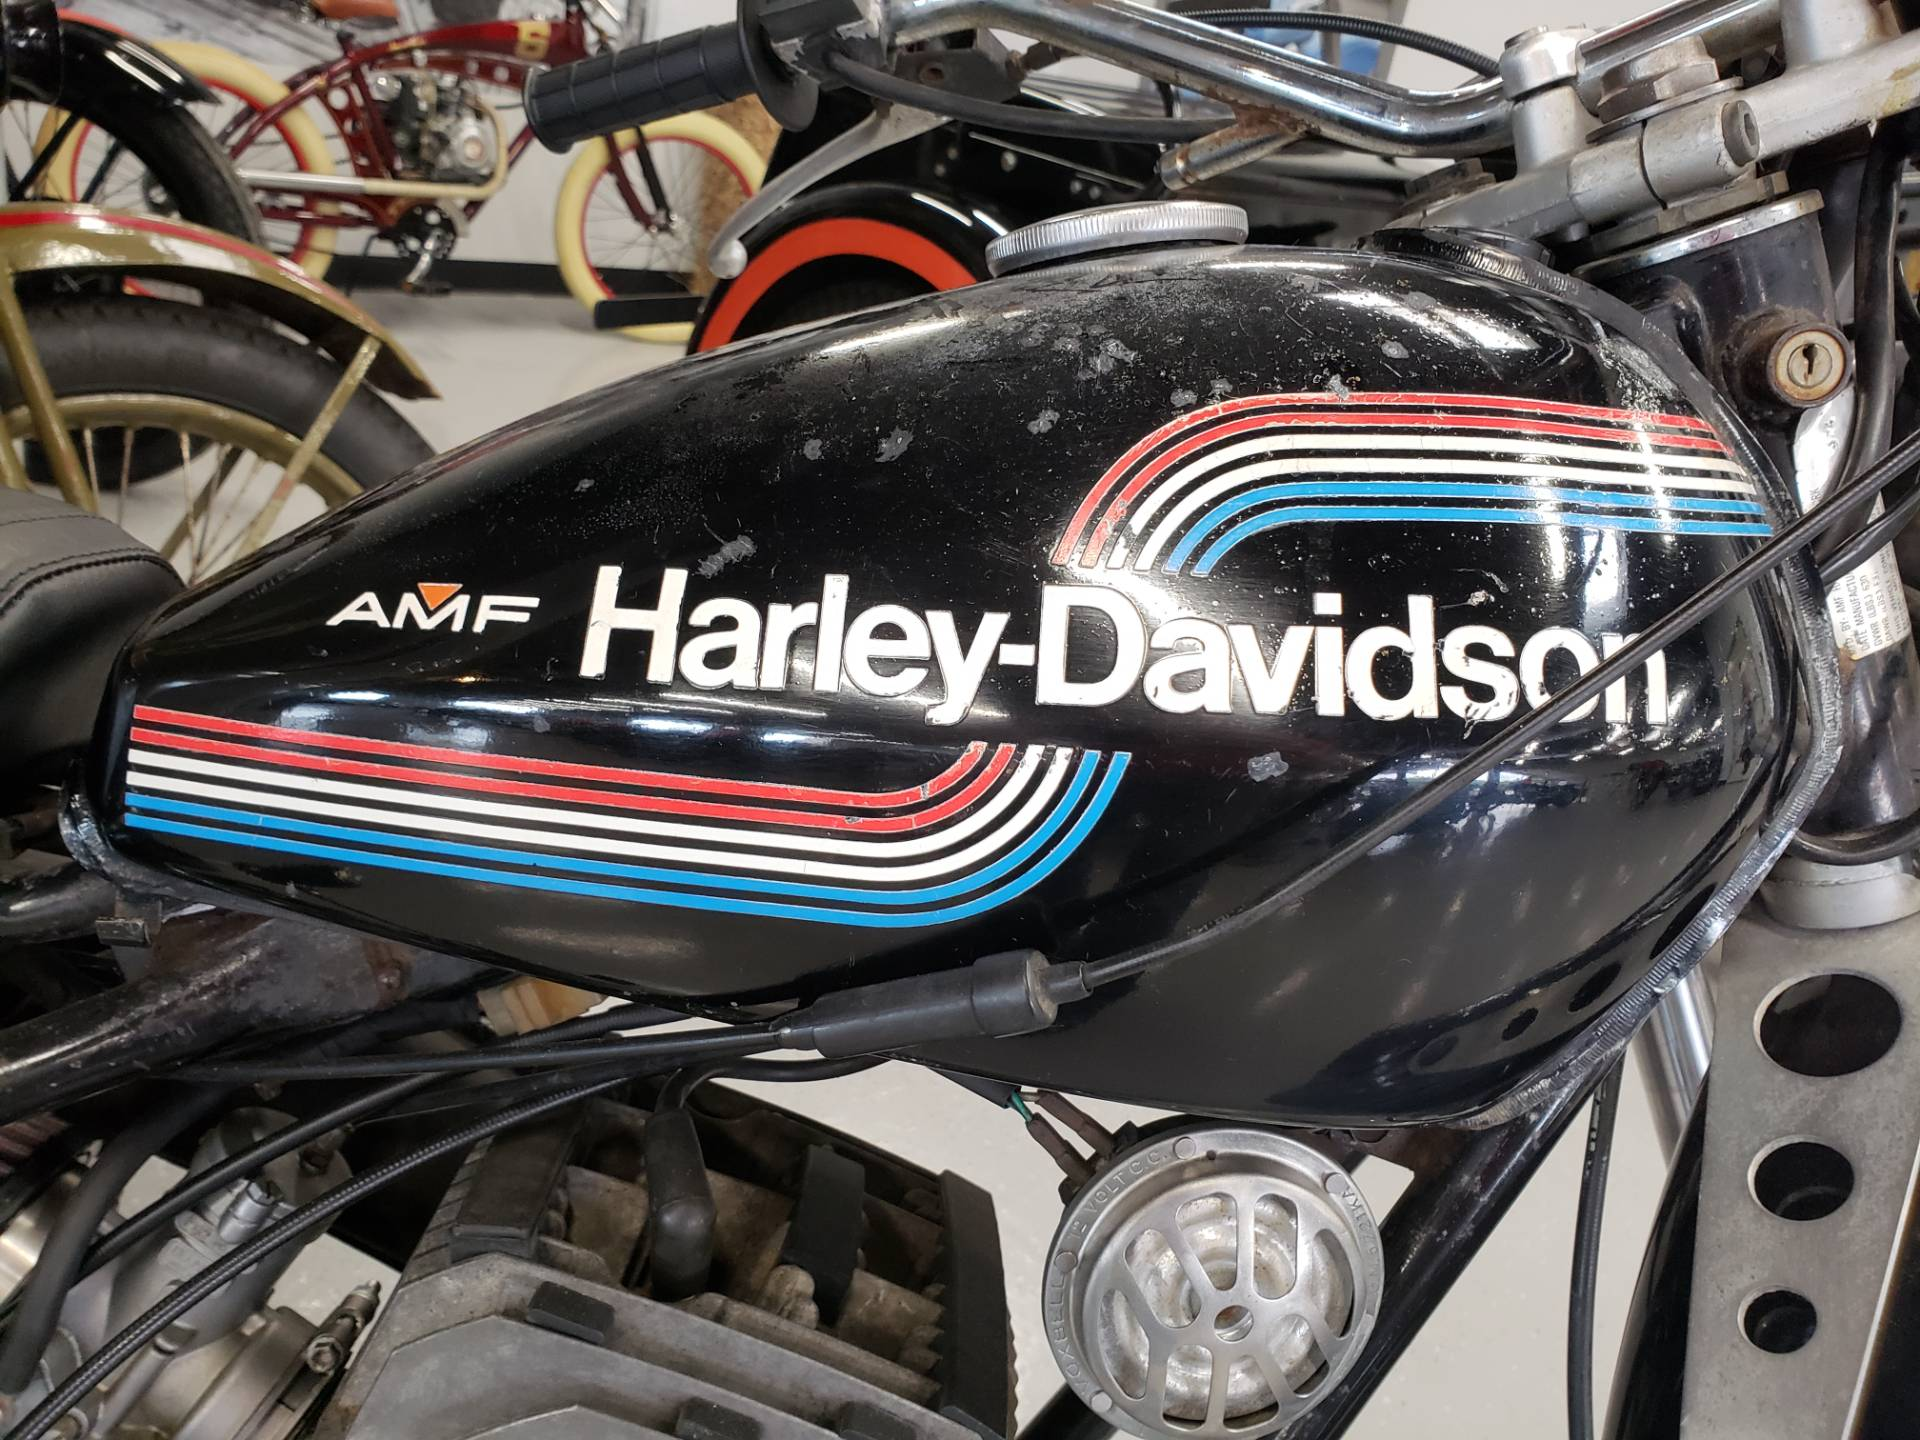 1975 Harley-Davidson SX 175 in Fort Myers, Florida - Photo 4